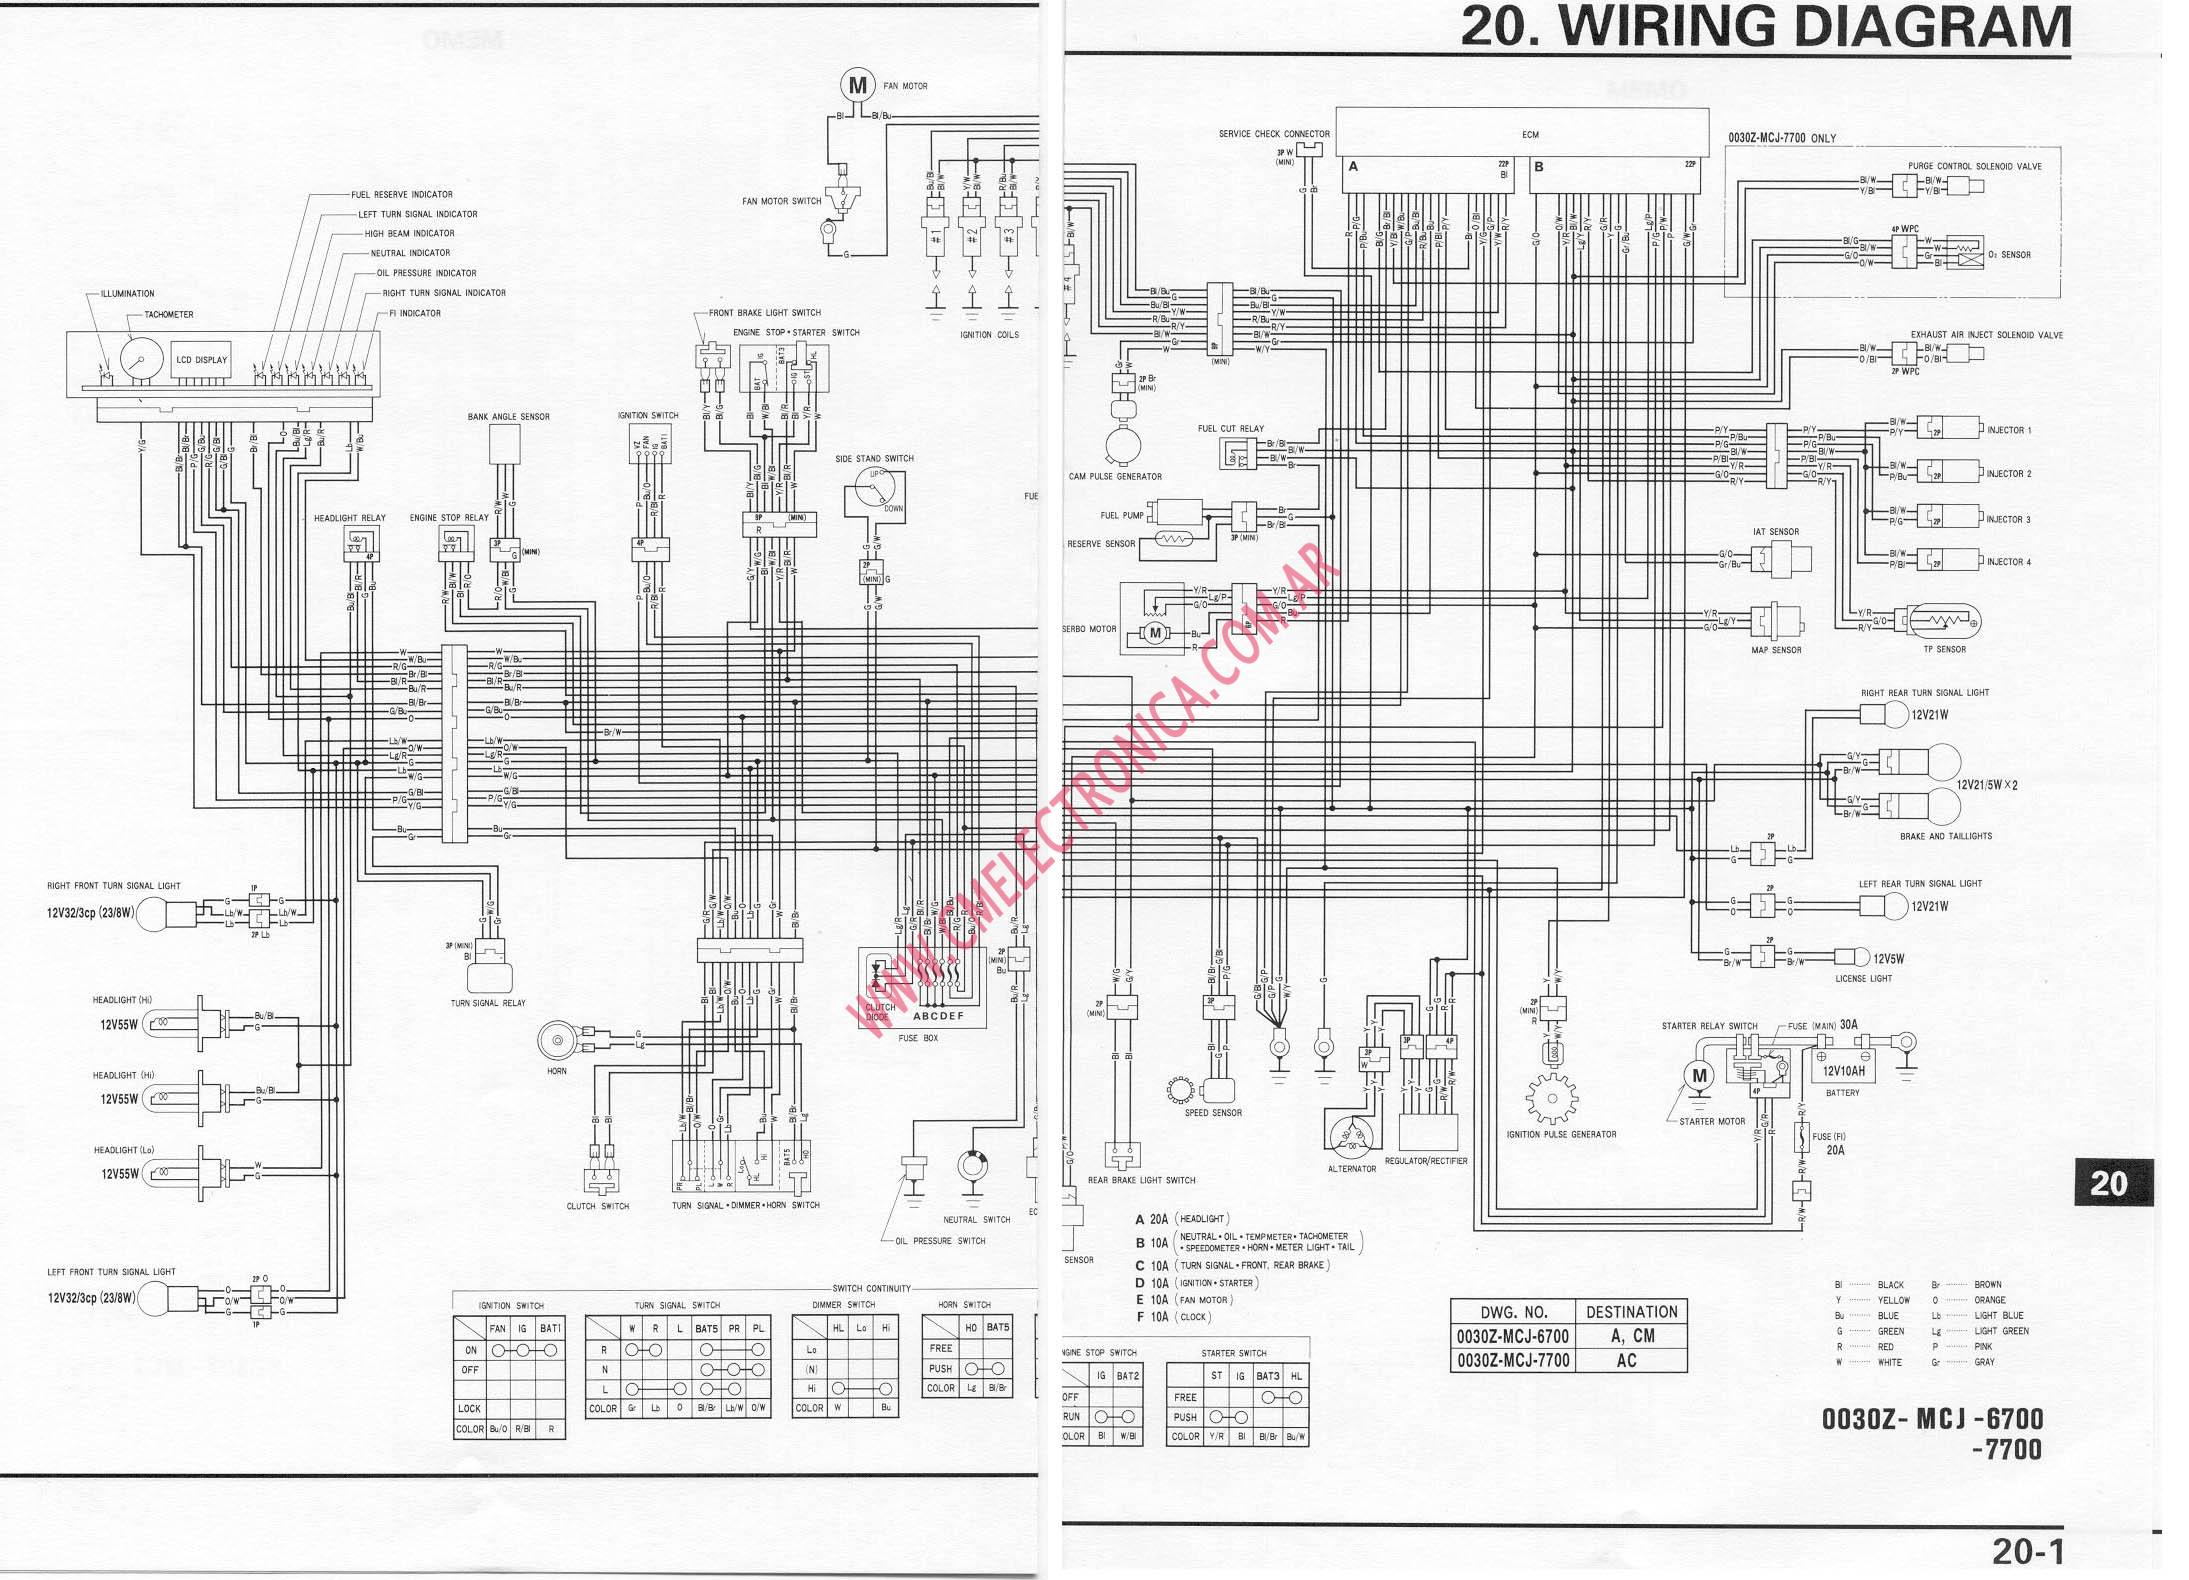 188 Yamaha Wiring Diagram Section together with Repair And Service Manuals further Xloiling furthermore Wiring Diagram Honda Cbr1100xx moreover 23 Basic Honda Charging Circuit. on honda 200 motorcycle wiring diagram